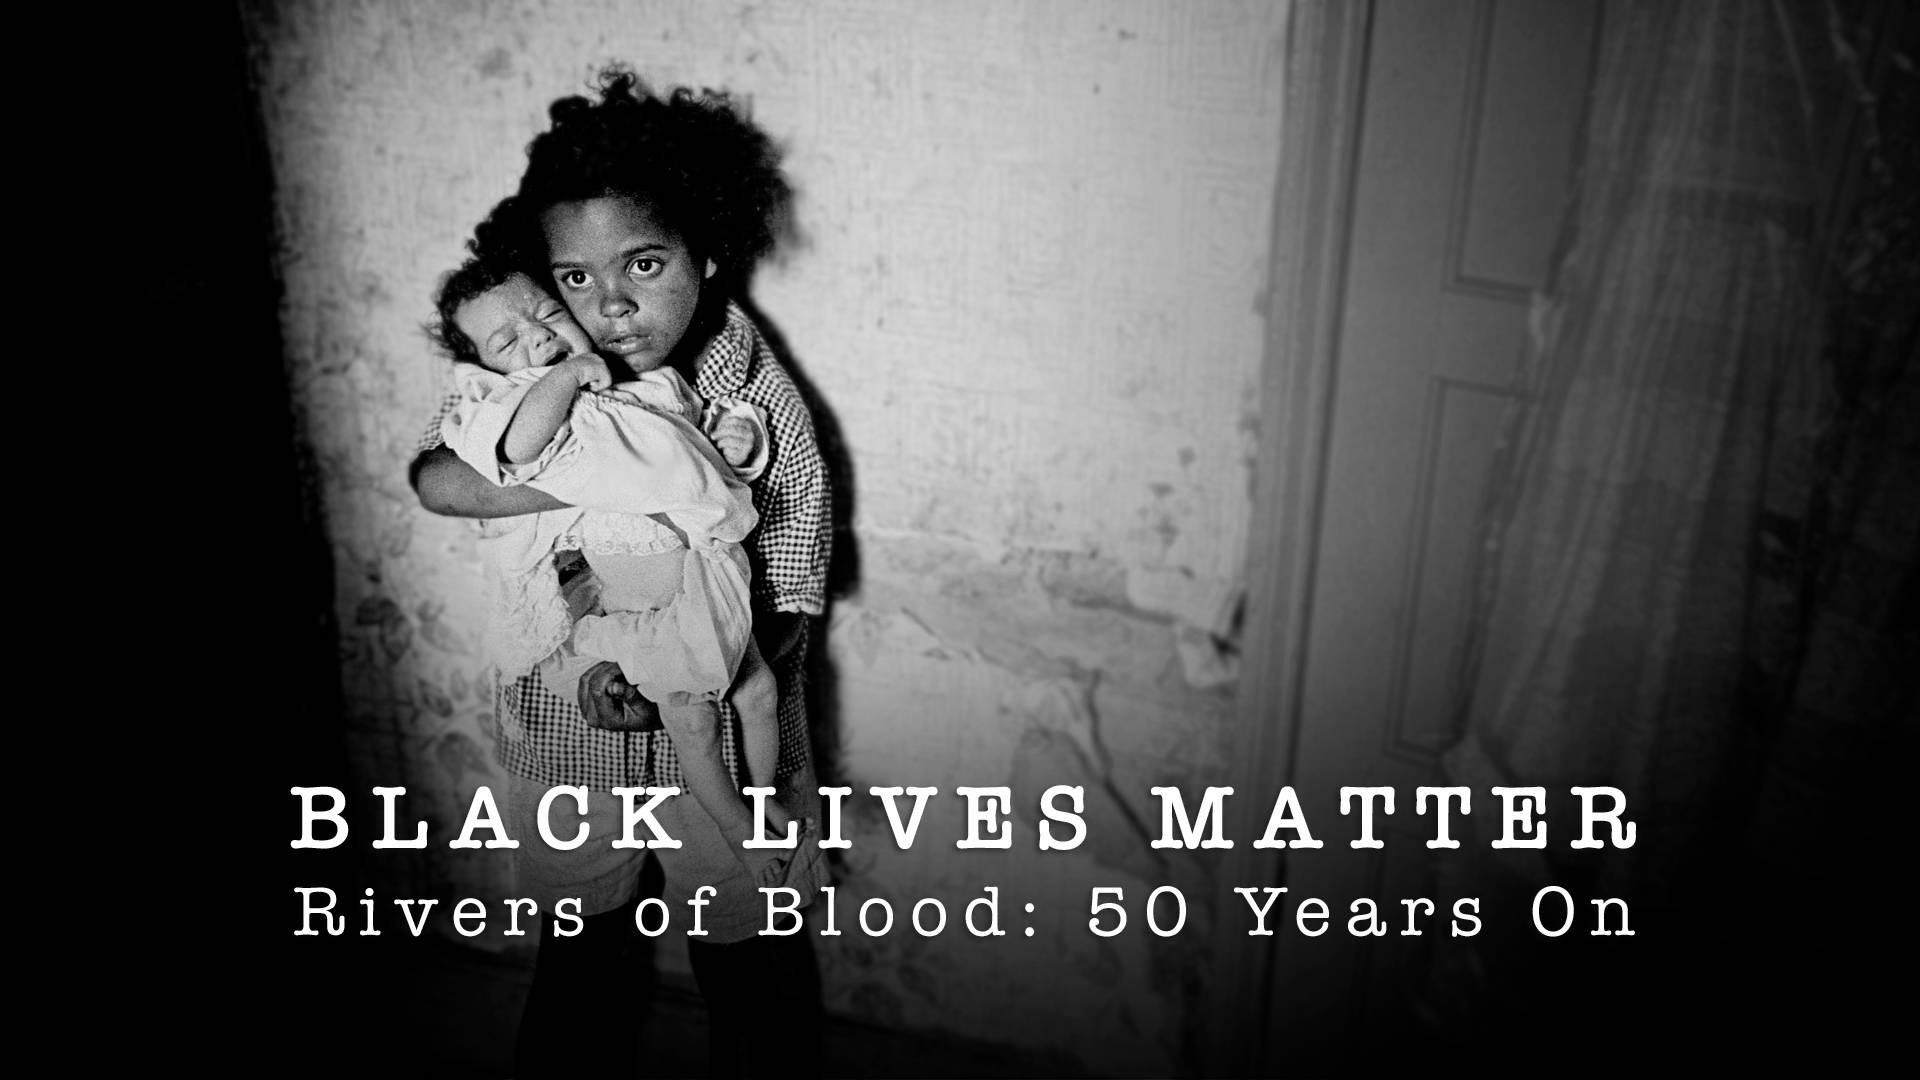 Black Lives Matter: Rivers of Blood 50 Years On on BritBox UK